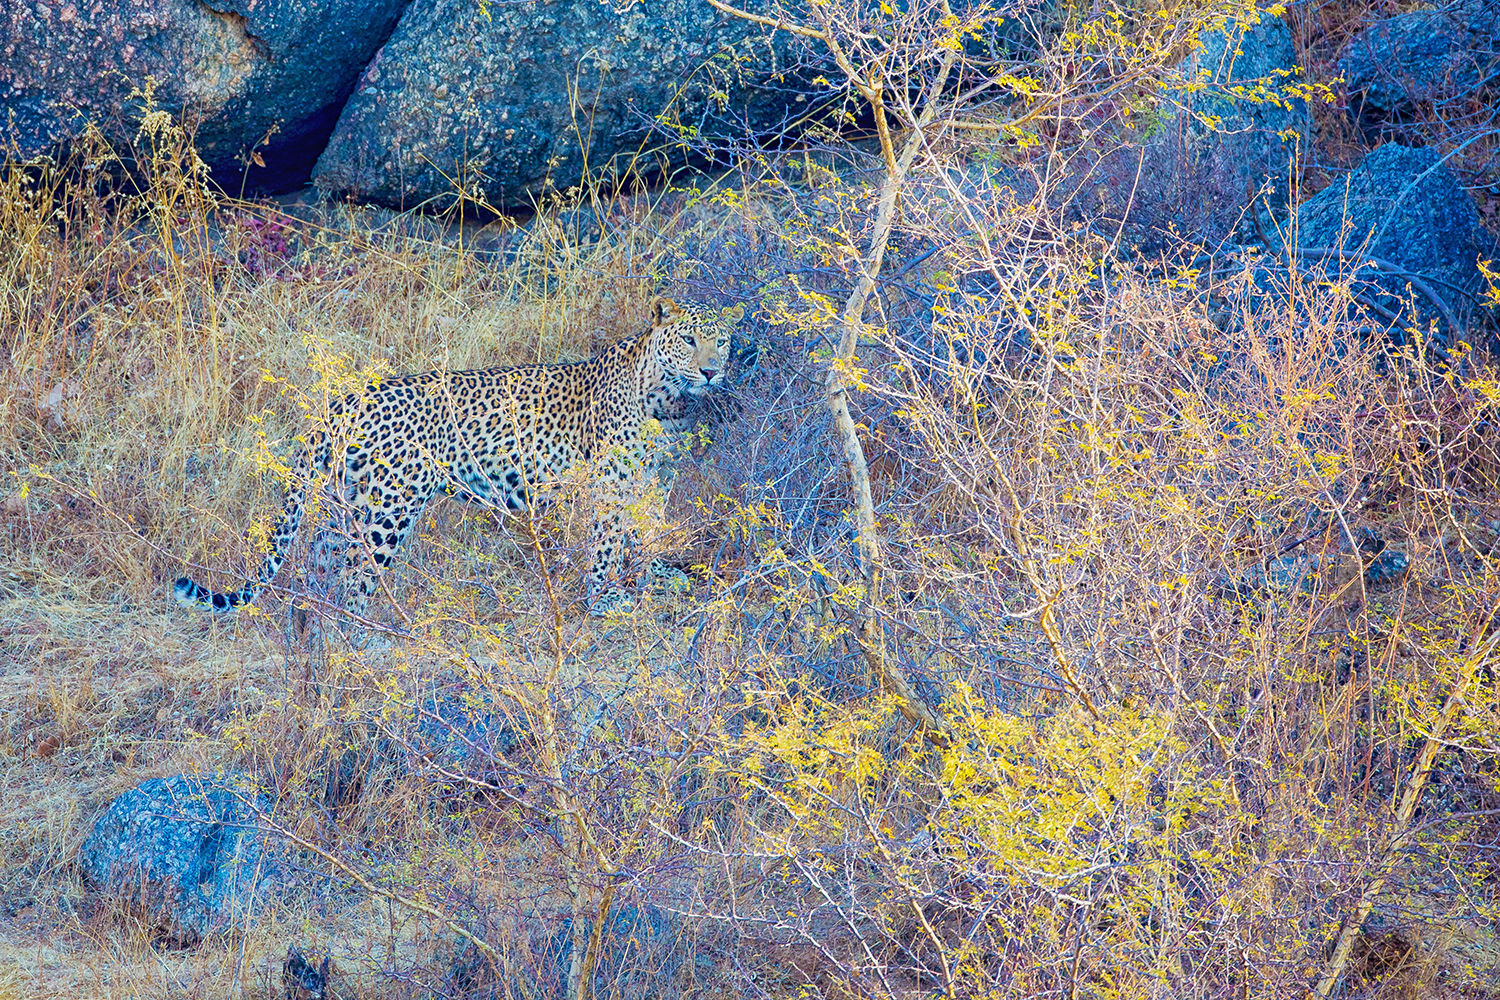 Leopard, Indian scenery, wildlife images